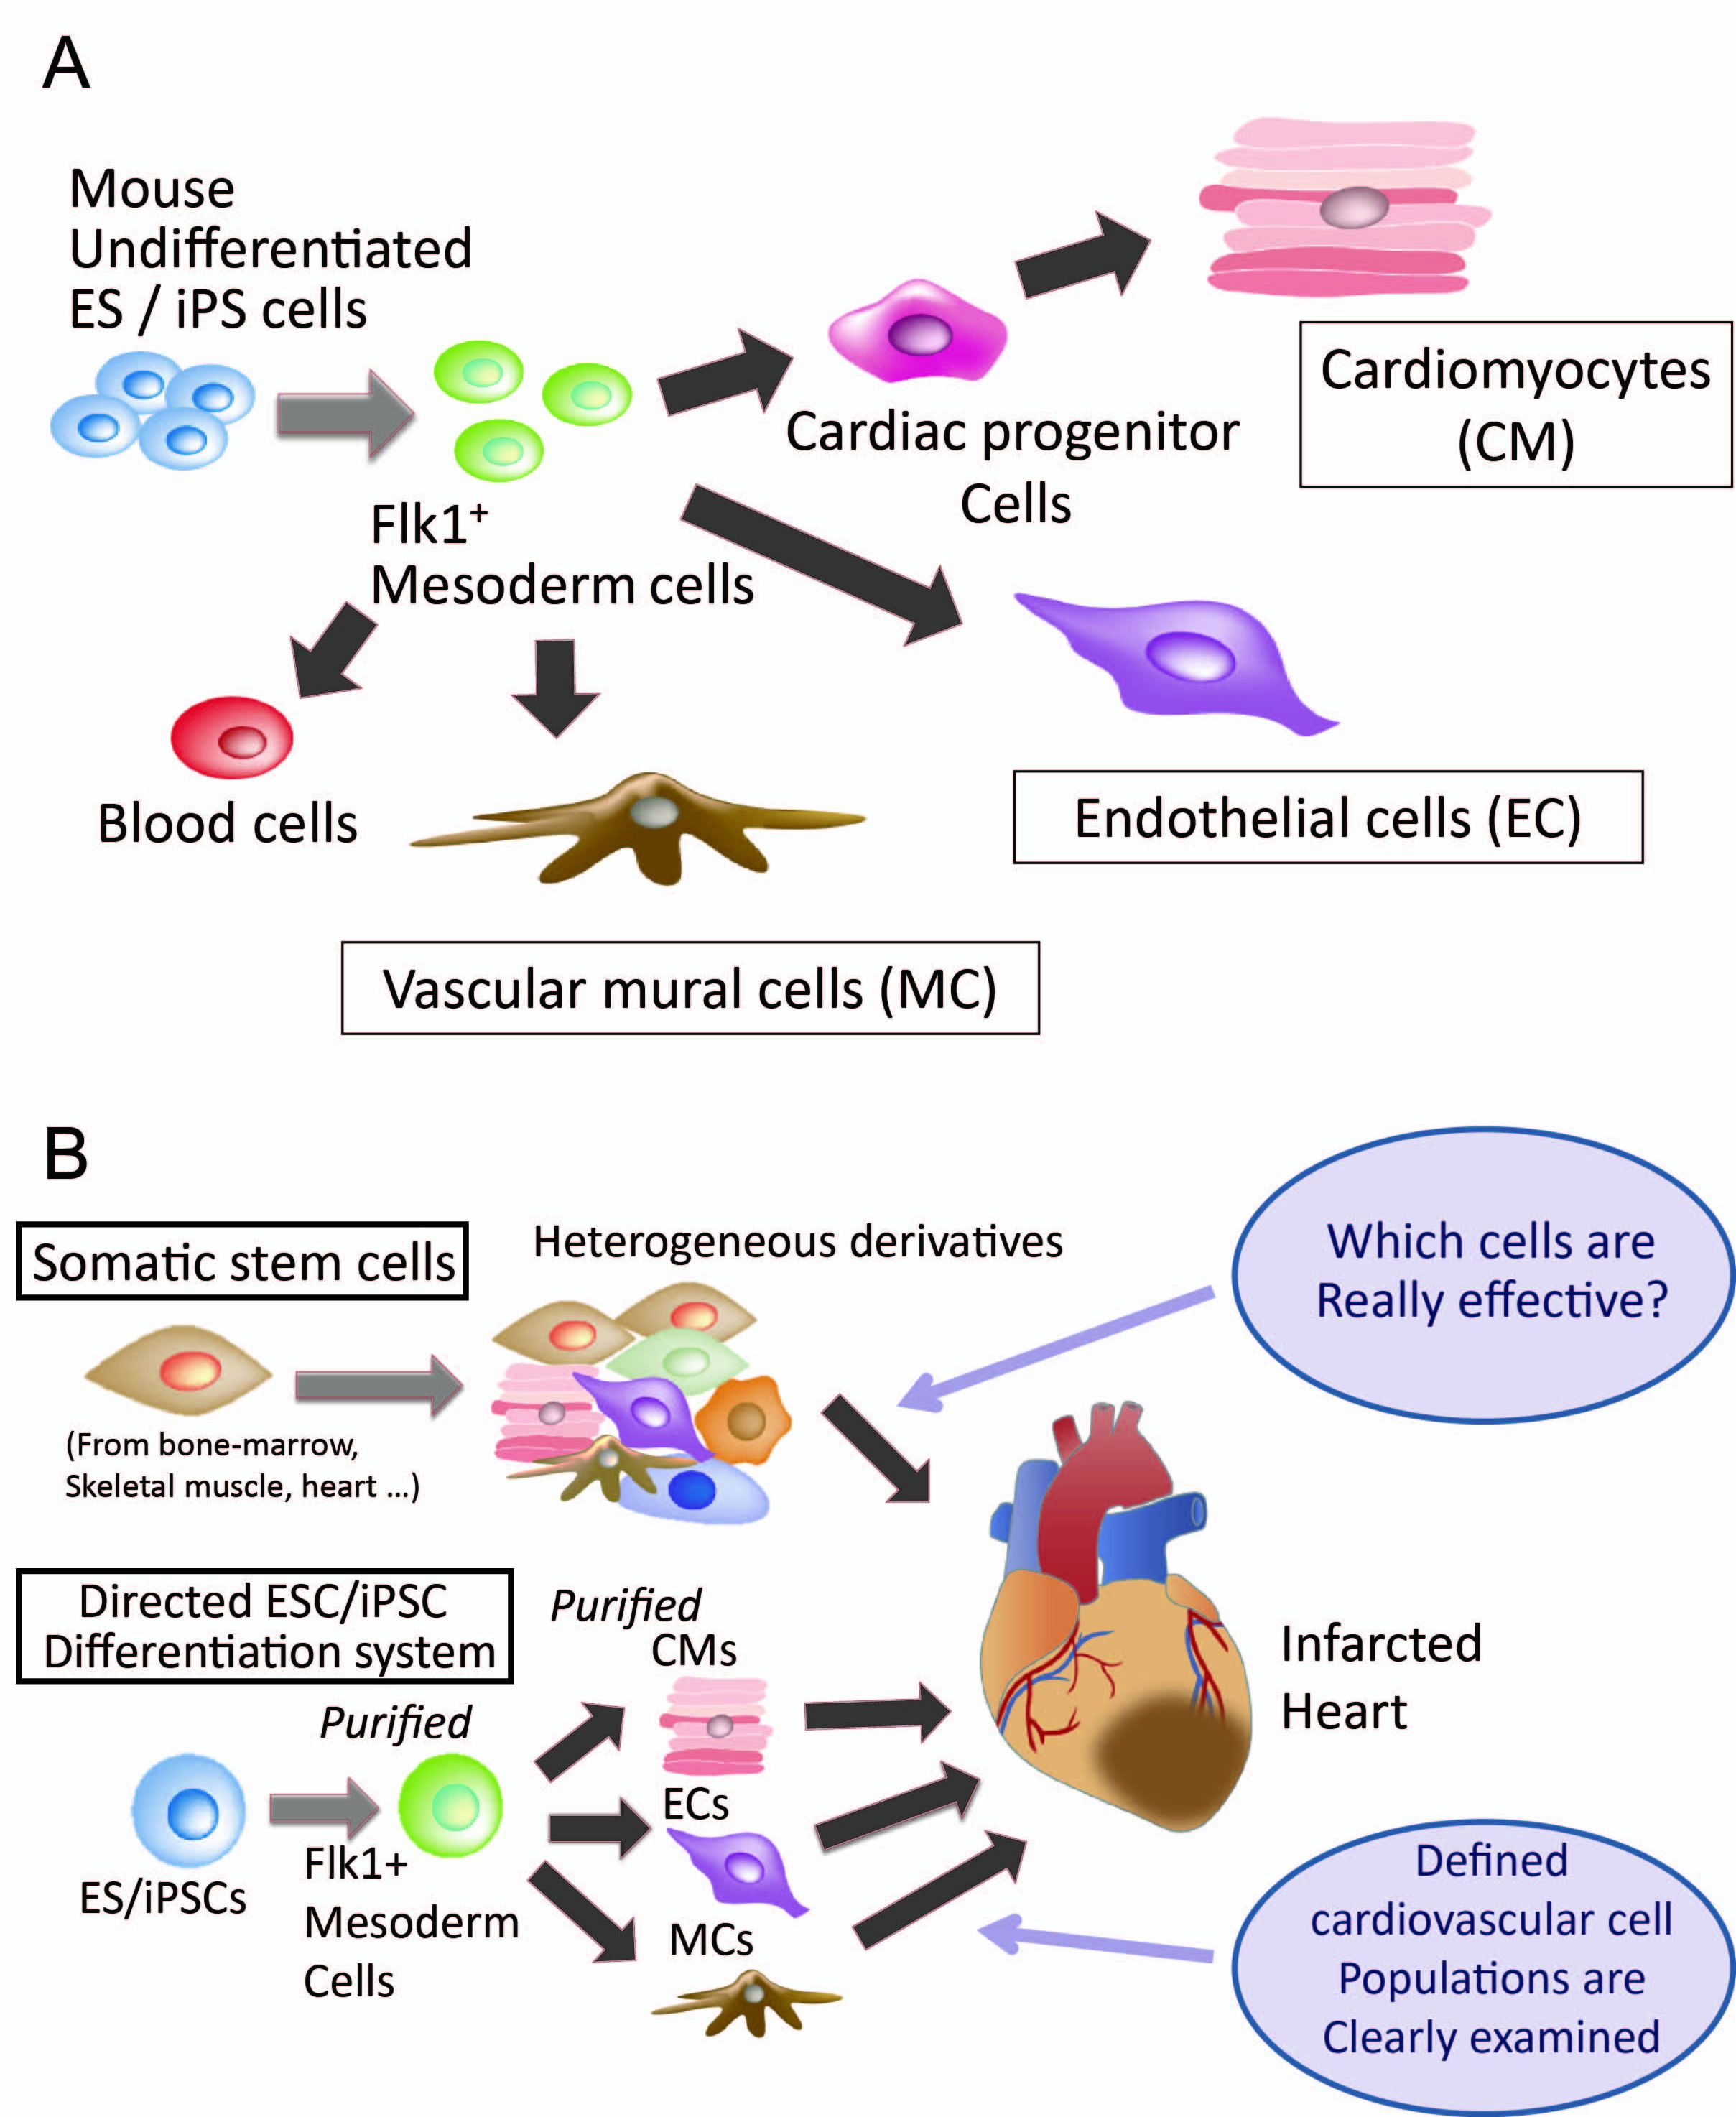 Pluripotent Stem Cells For Cardiac Cell Therapy The Application Of Cell Sheet Technology Intechopen